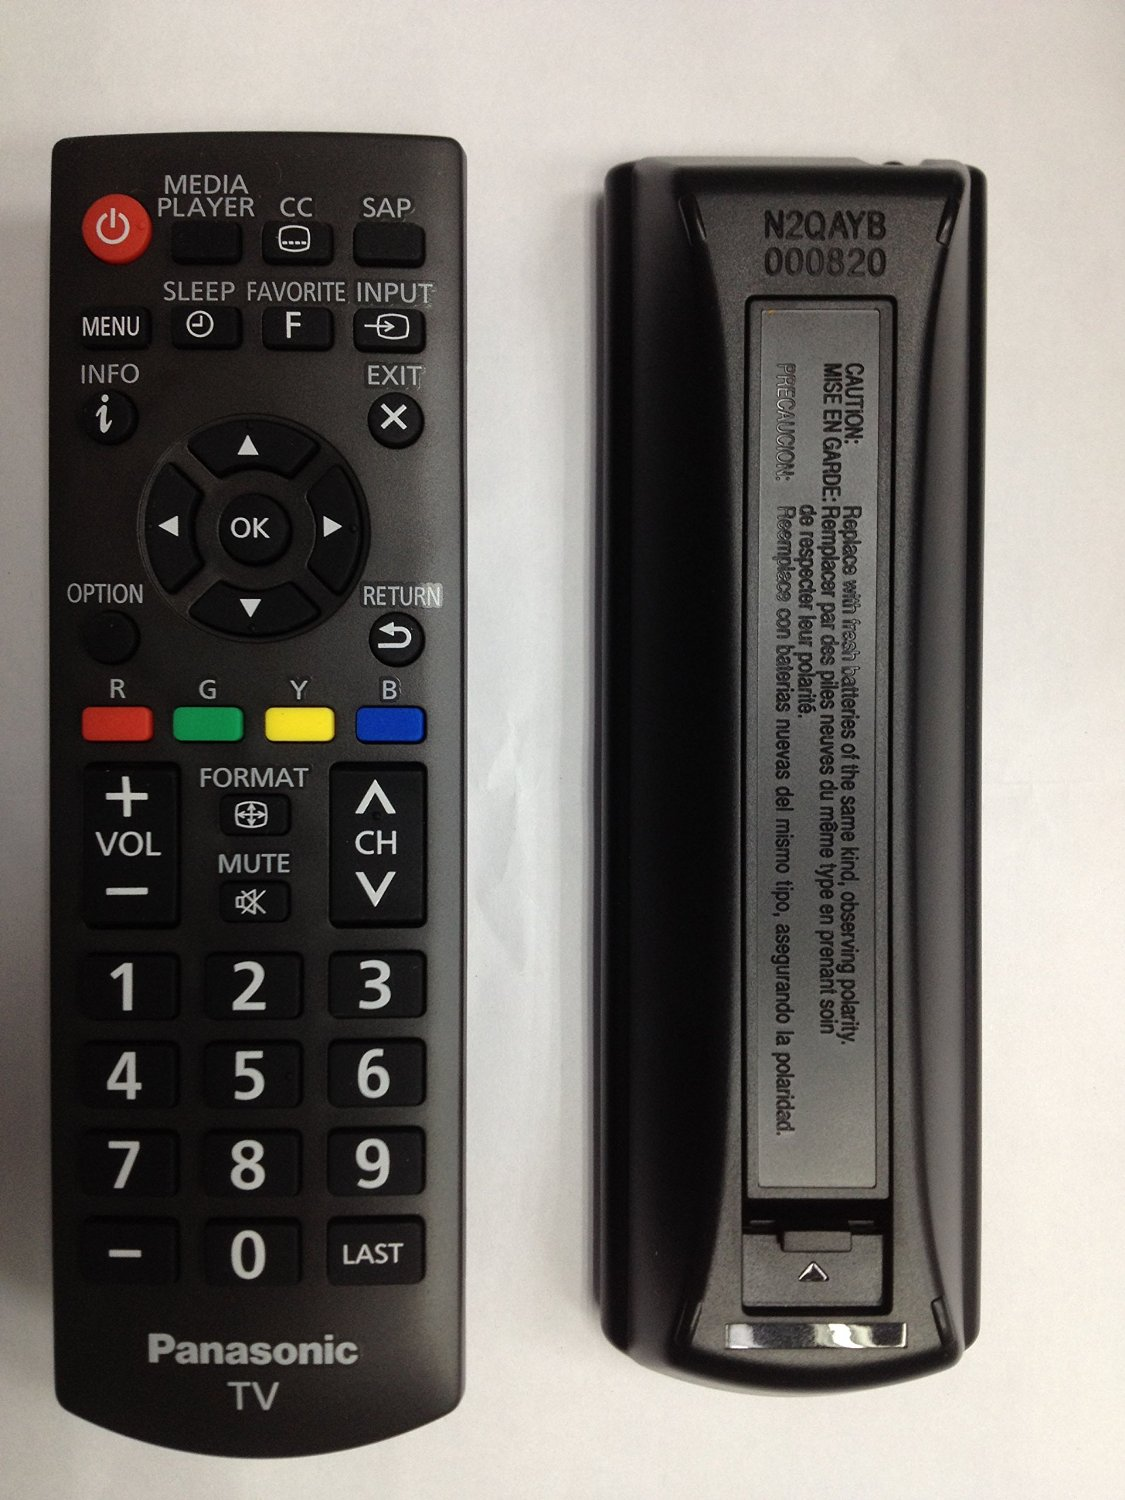 New OEM Replacement Remote Control N2QAYB000820 for Panasonic TVs TCP42x60 TC32A400U TC39A400U TC40A420U TC50A400U TCL32B6 TCL32B6P